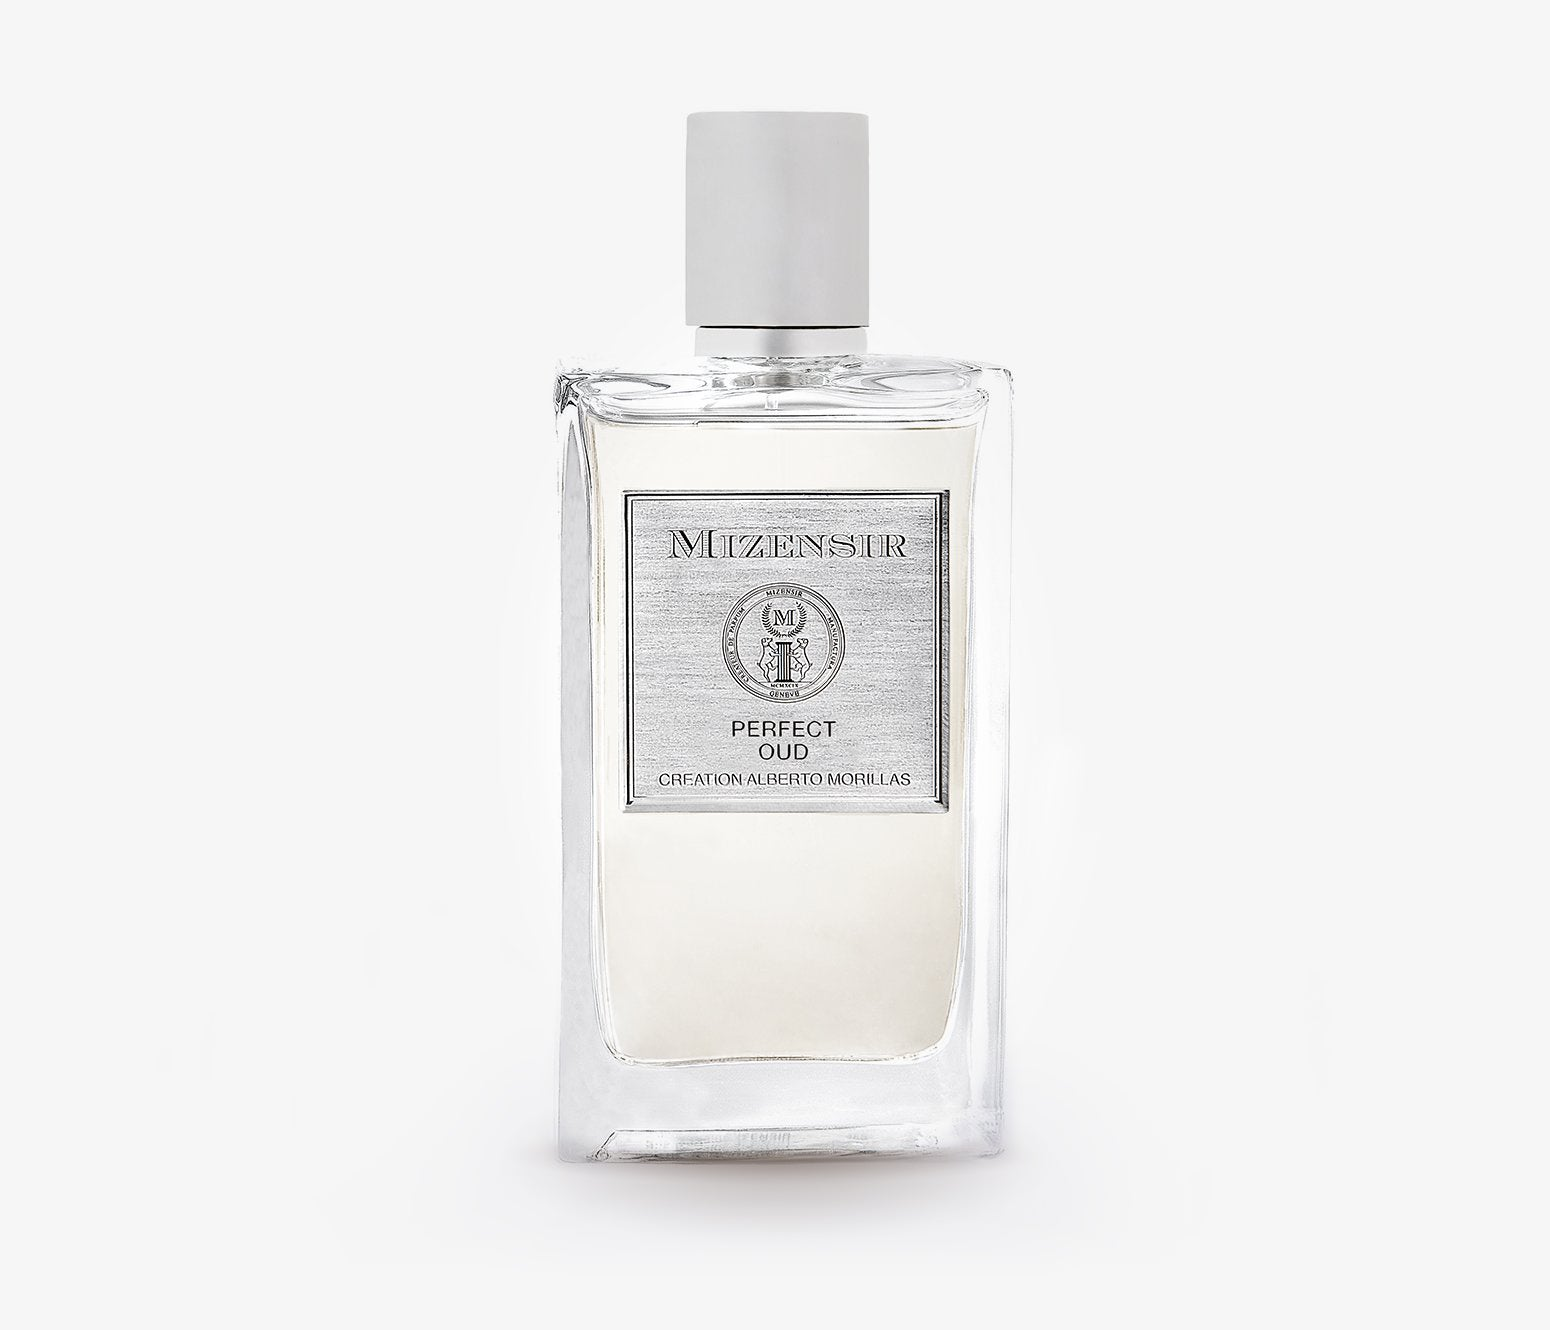 Mizensir - Perfect Oud - 100ml - YLL001 - product image - Fragrance - Les Senteurs